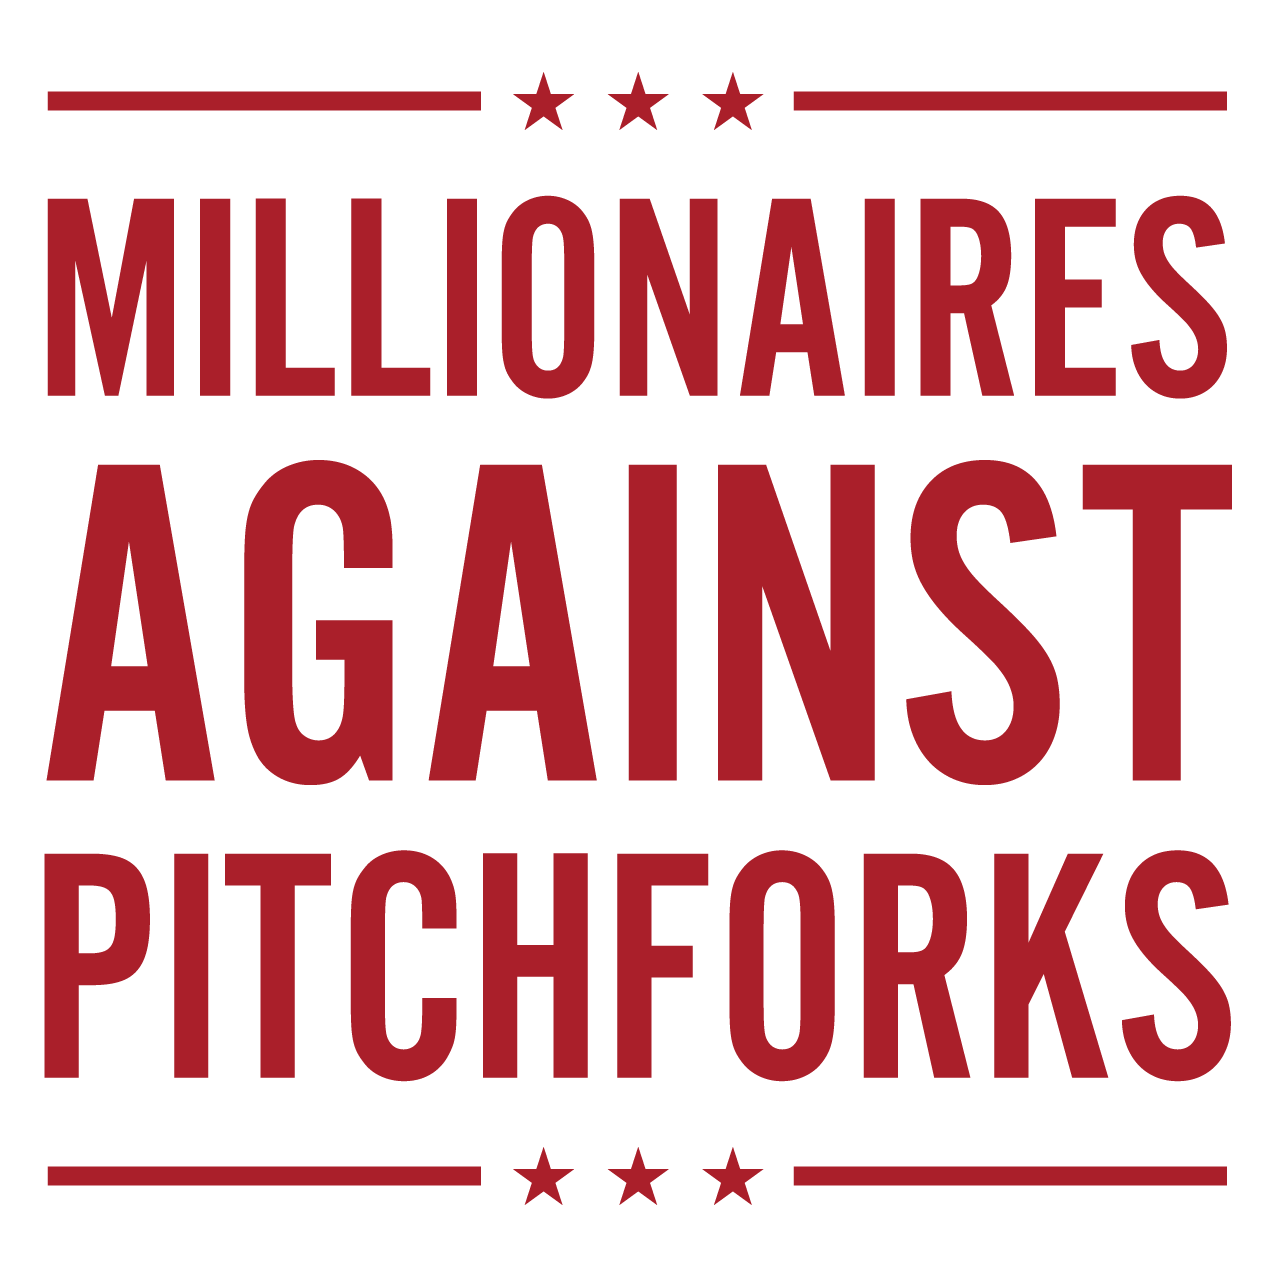 Millionaires Against Pitchforks